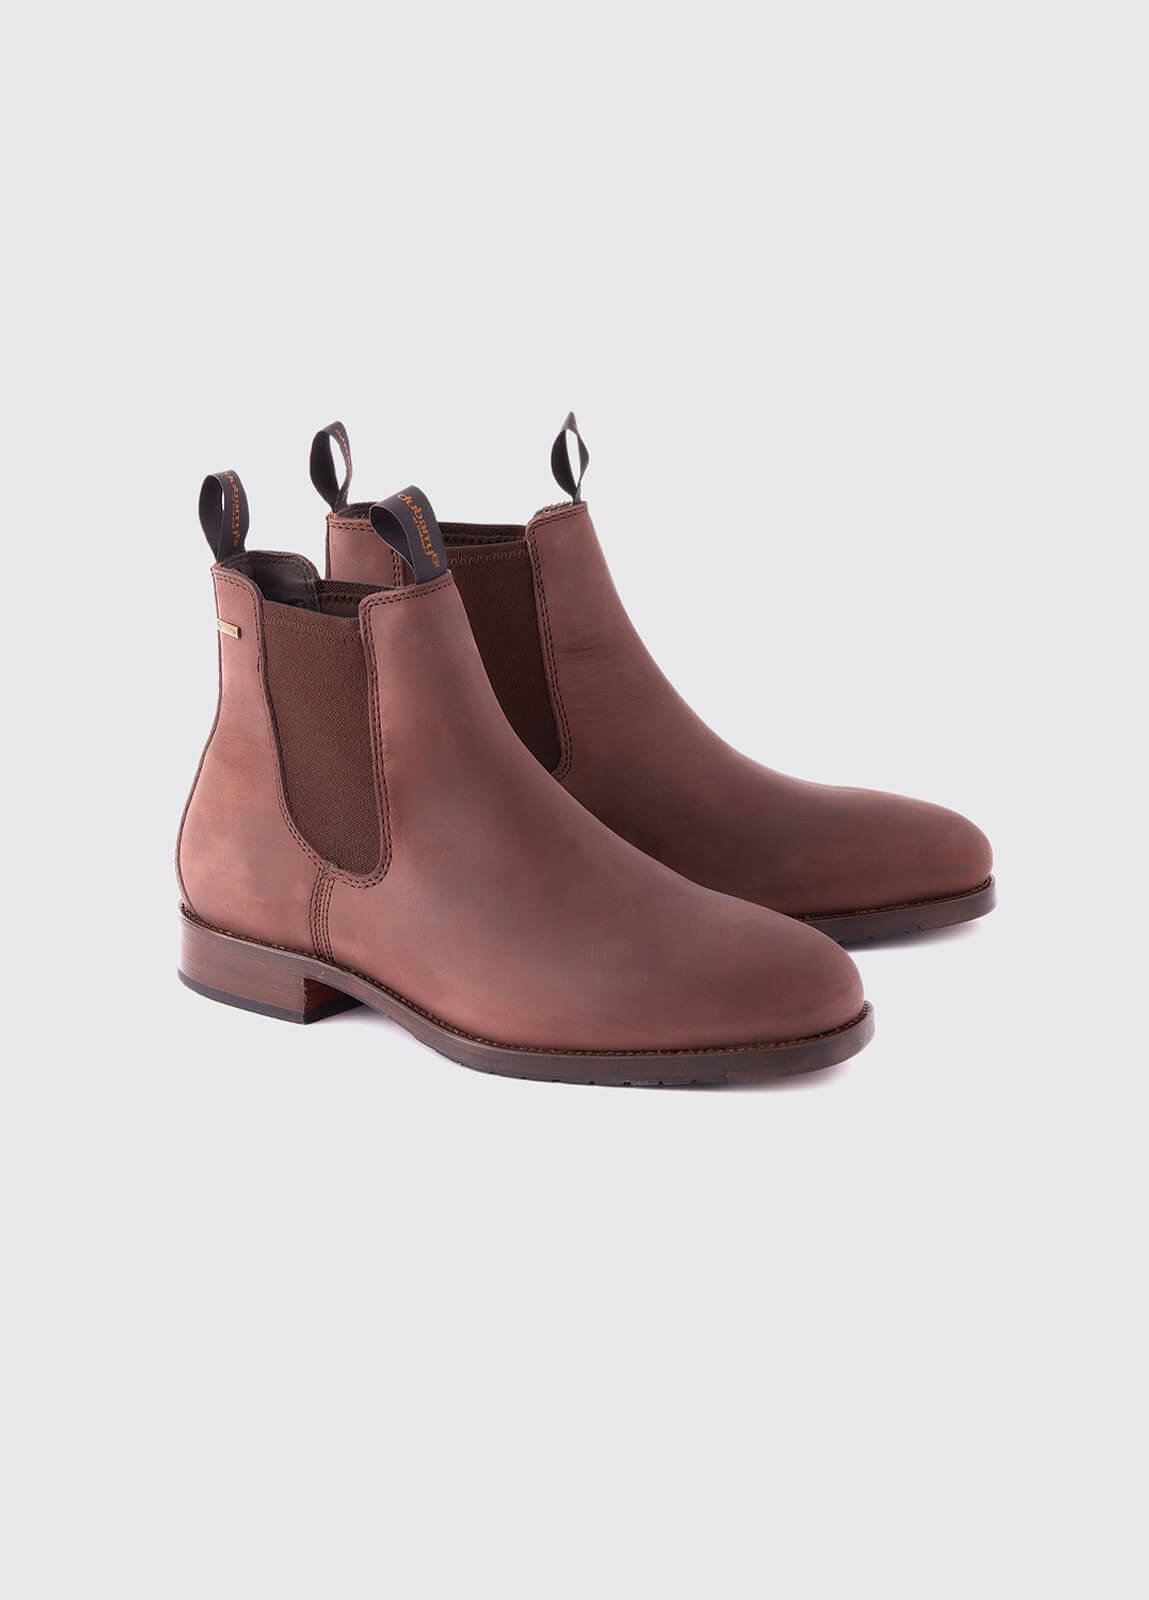 Kerry Leather Soled Boot - Old Rum